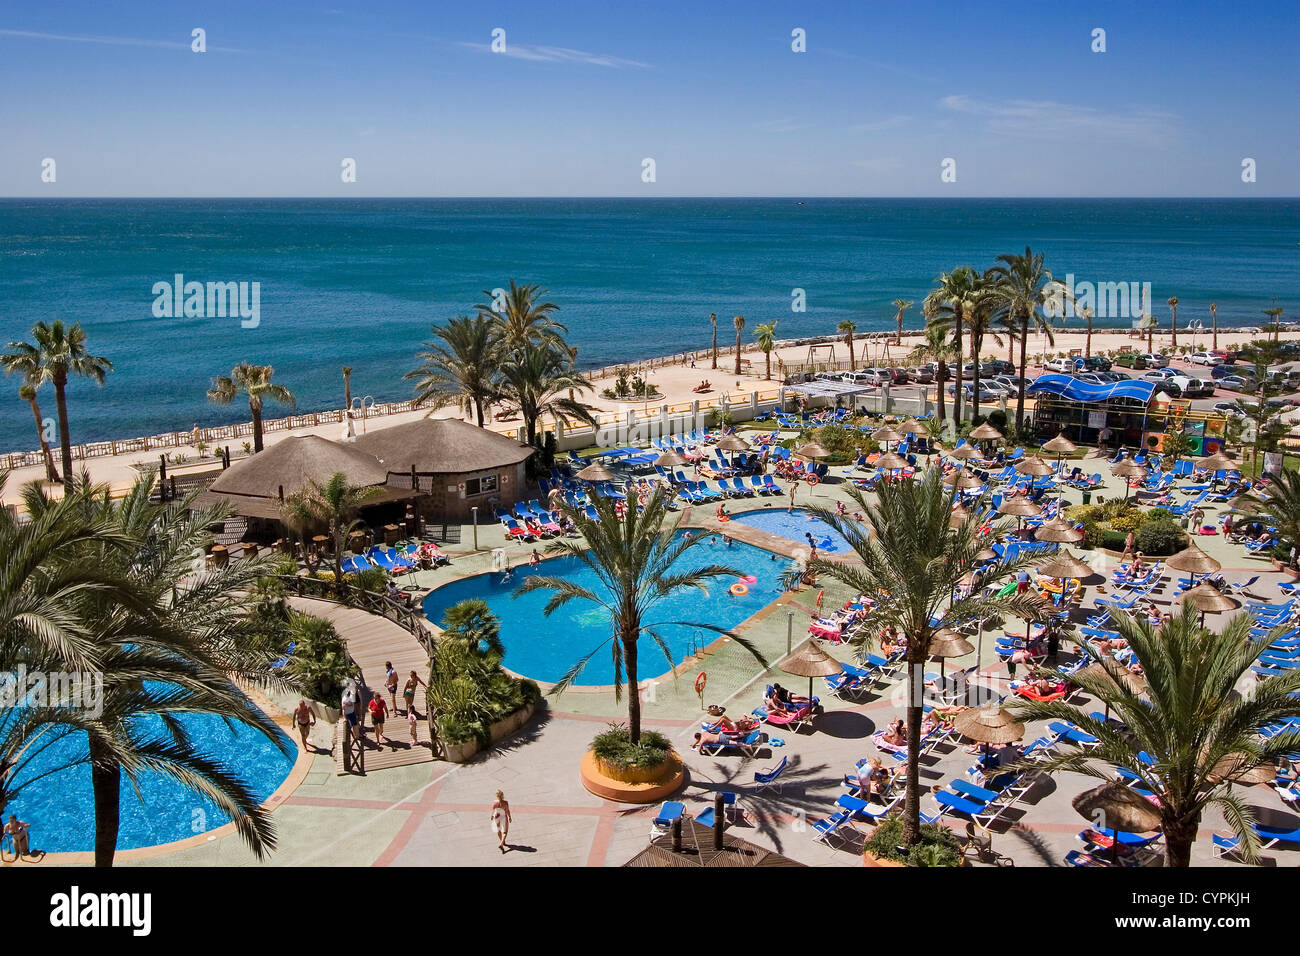 Piscinas Malaga Pool And Gardens Holiday Resort Sunset Beach Benalmadena Malaga